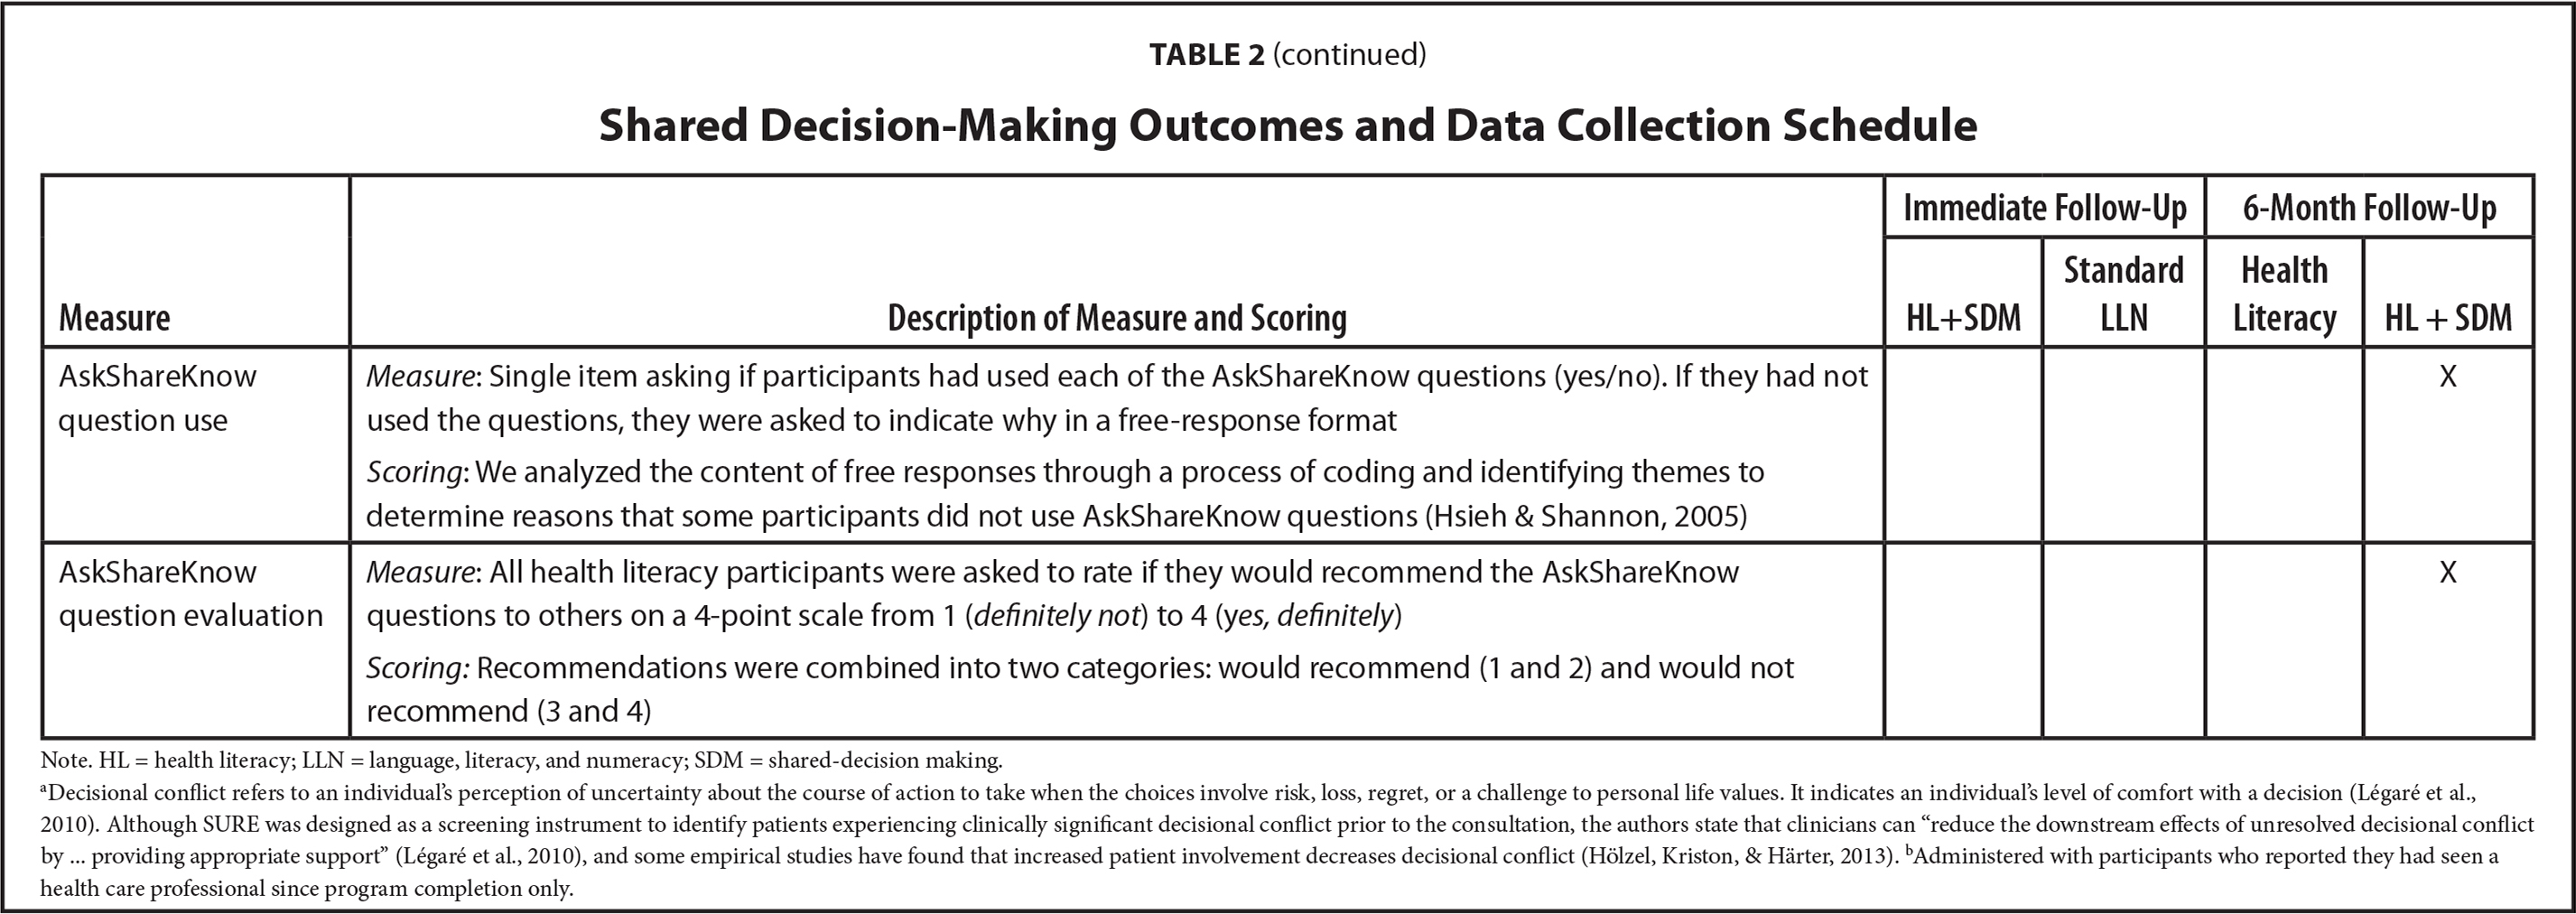 Shared Decision-Making Outcomes and Data Collection Schedule